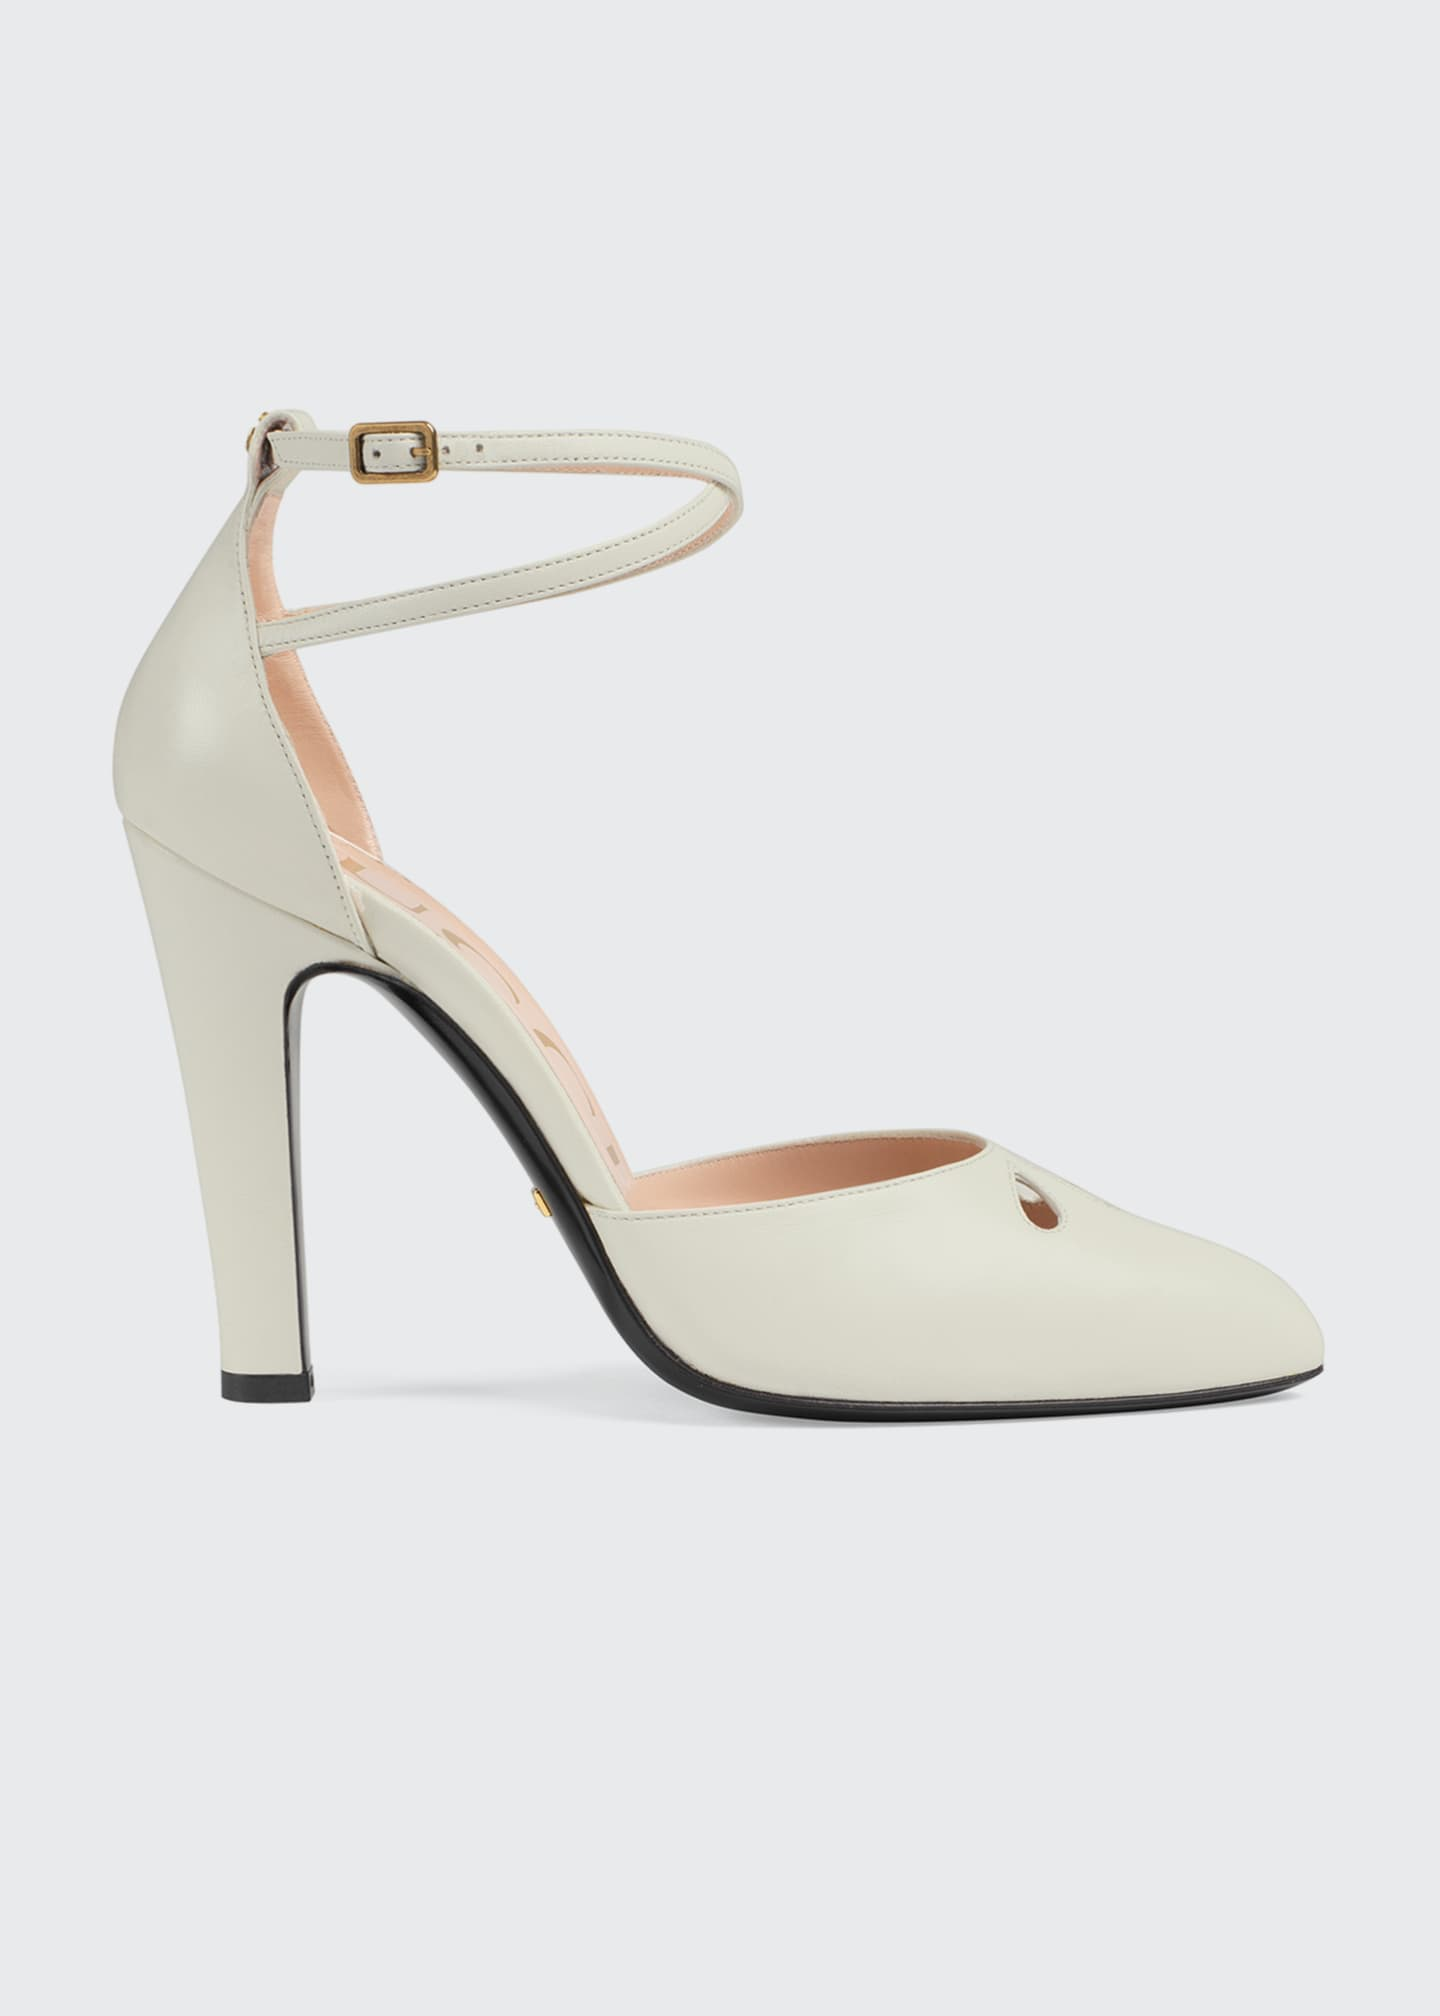 Gucci Indya 105mm Leather Ankle-Strap Pumps